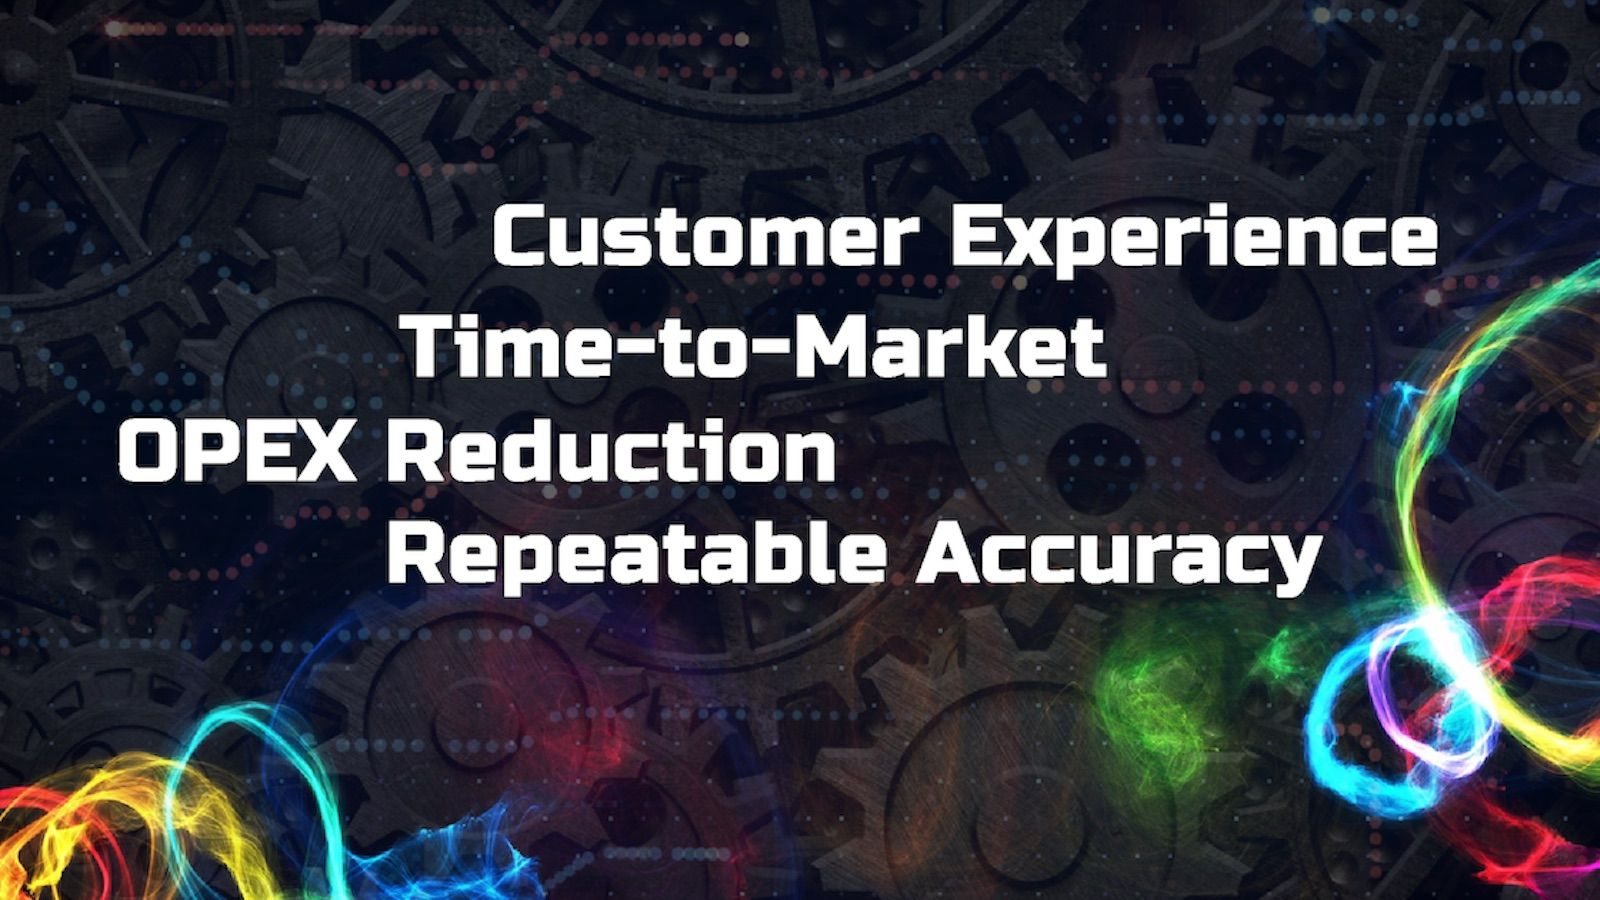 Test Automation: customer experience, time-to-market, OPEX reduction, Repeatable Accuracy